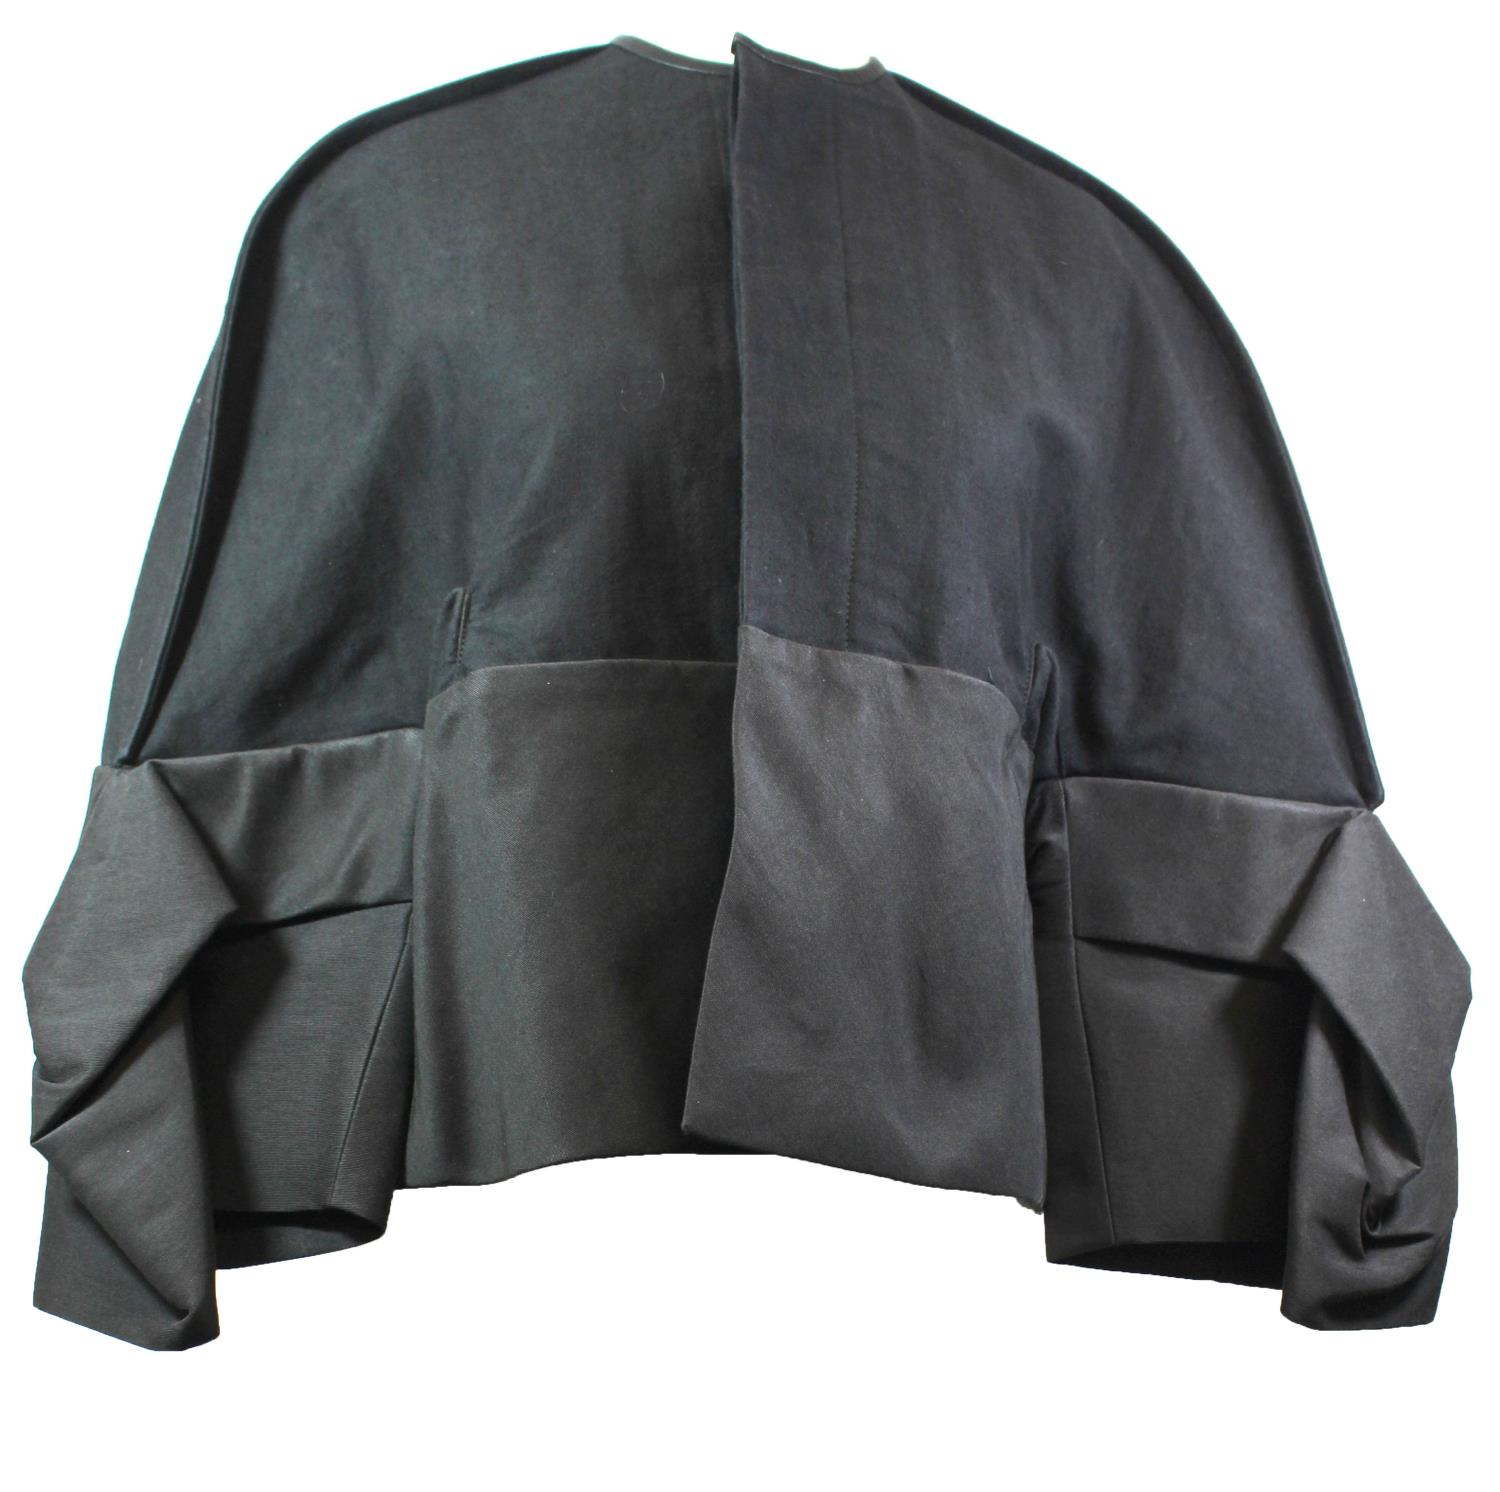 Lot 379 - RICK OWENS, BLACK COTTON JACKET With angel sleeves and hidden buttons along middle, with price